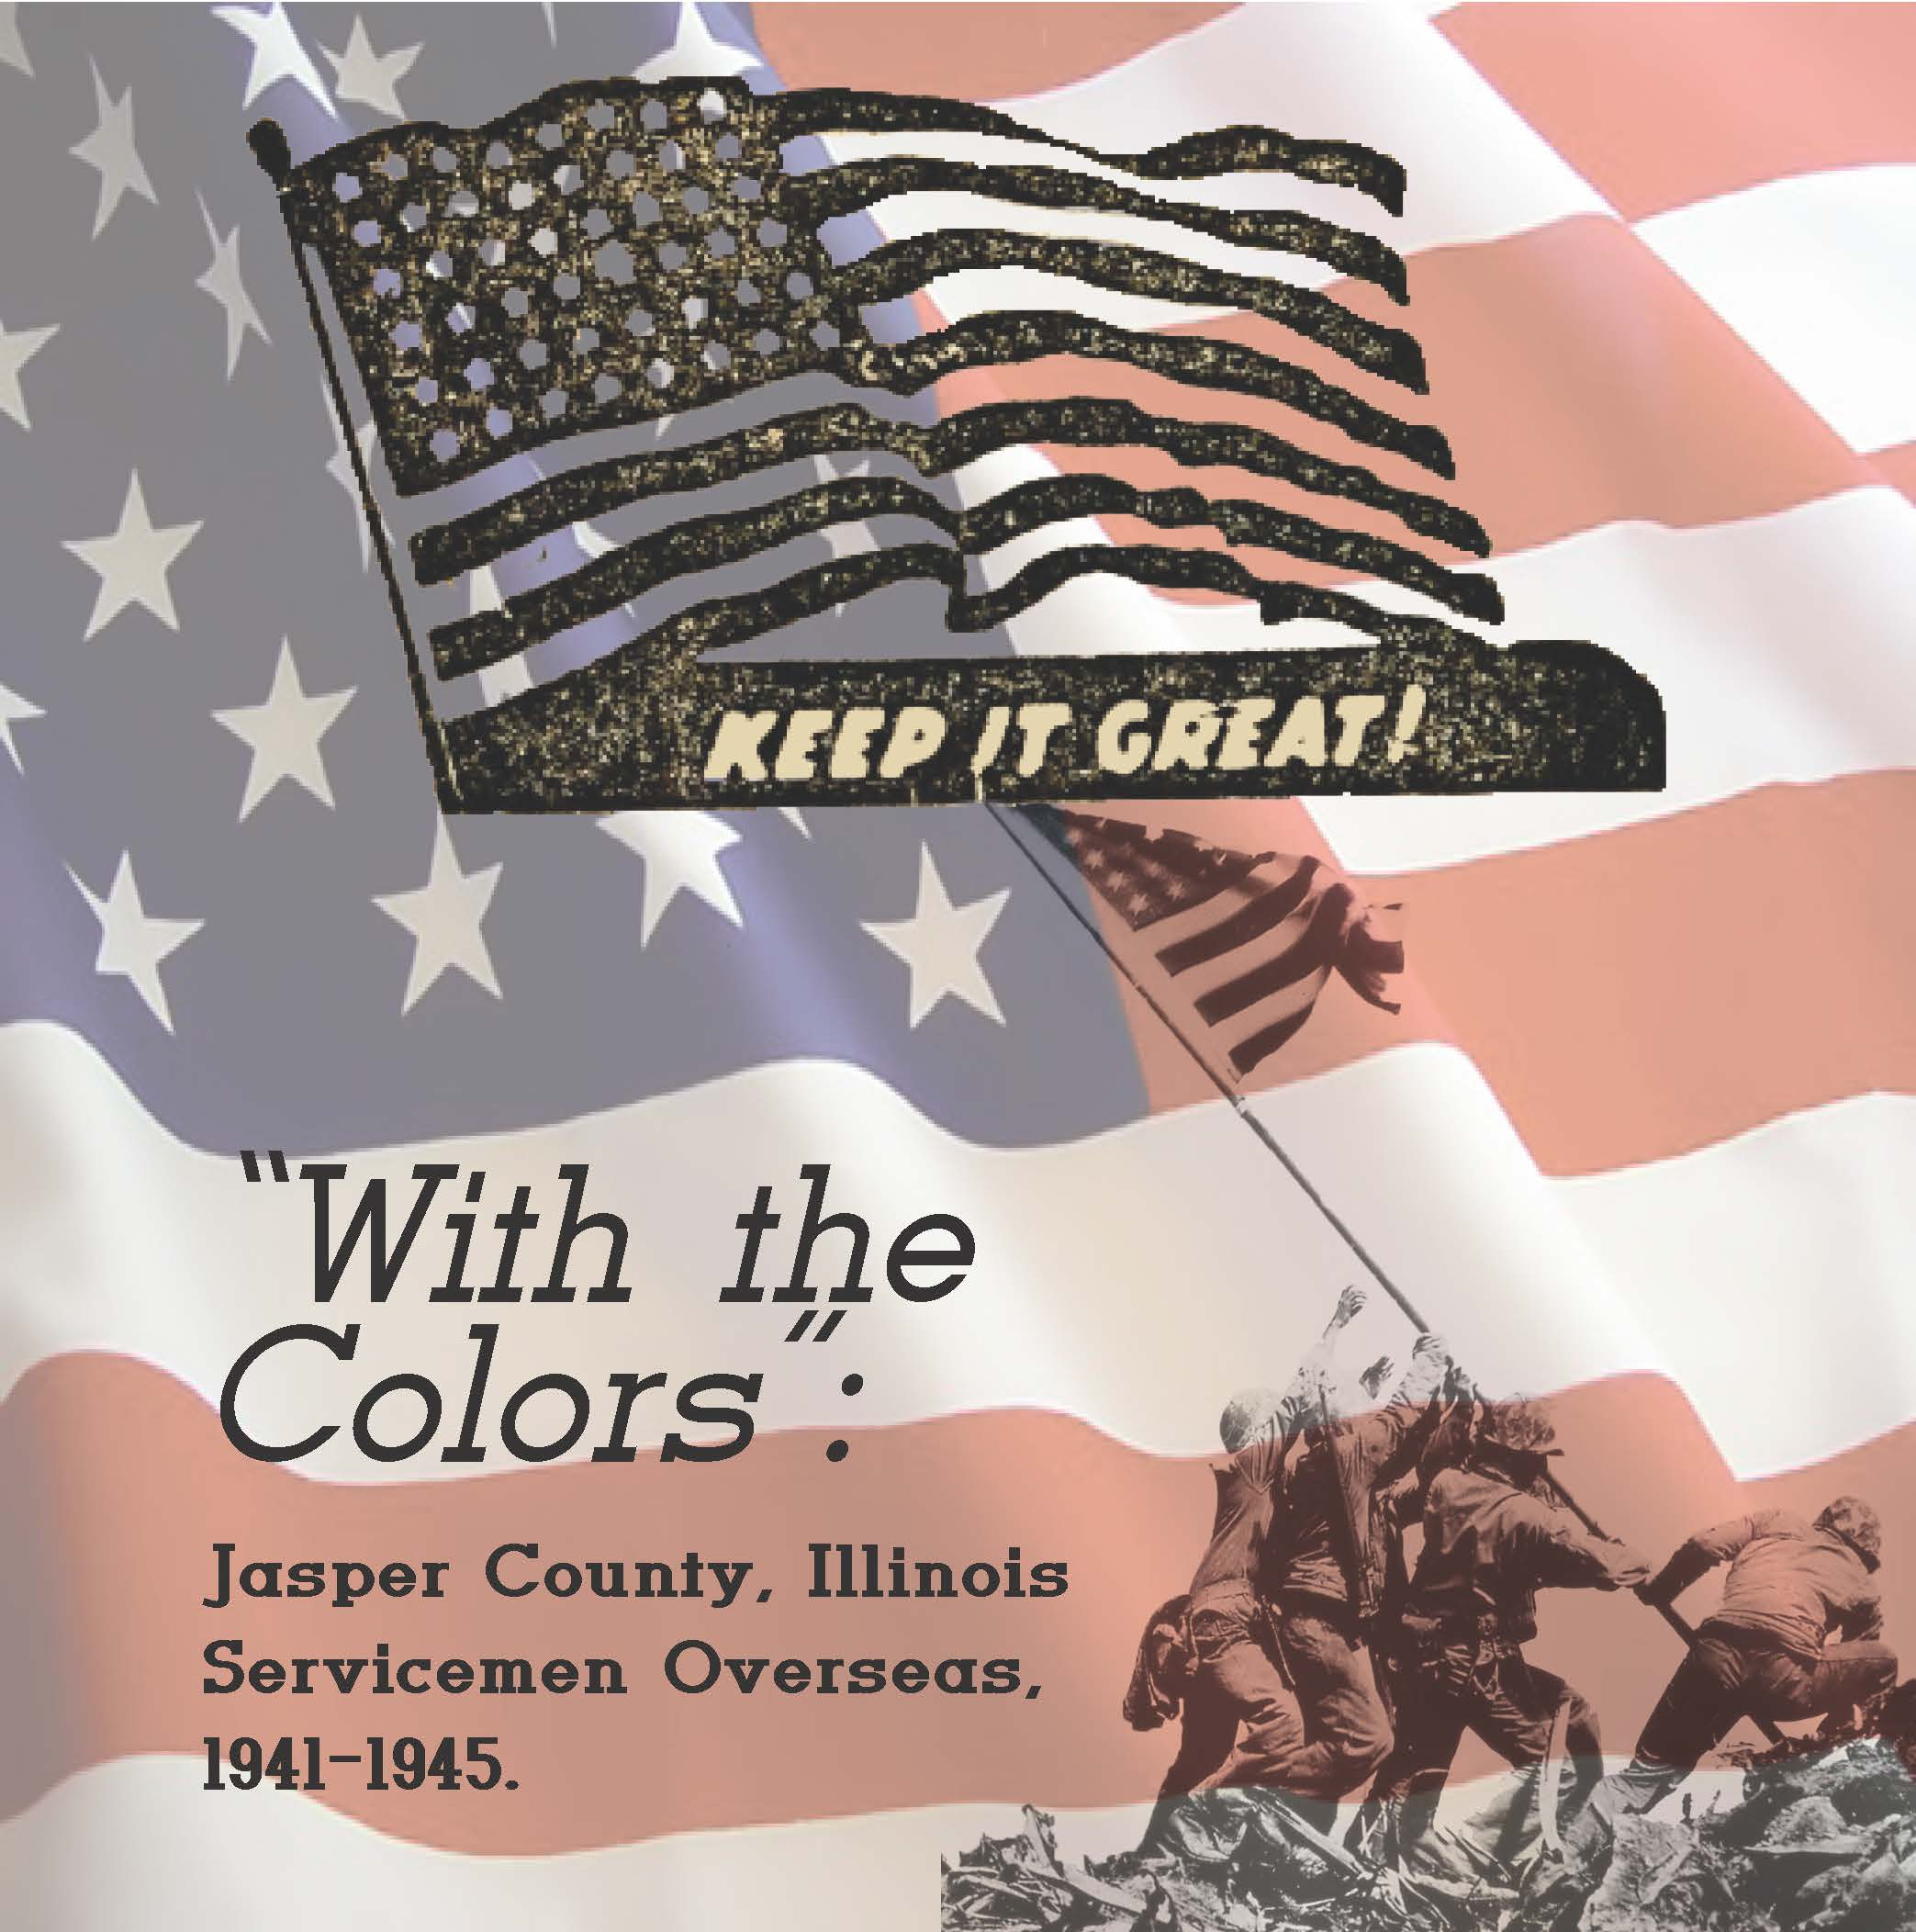 With the Colors: Jasper County IL Servicemen Overseas, 1941-1945